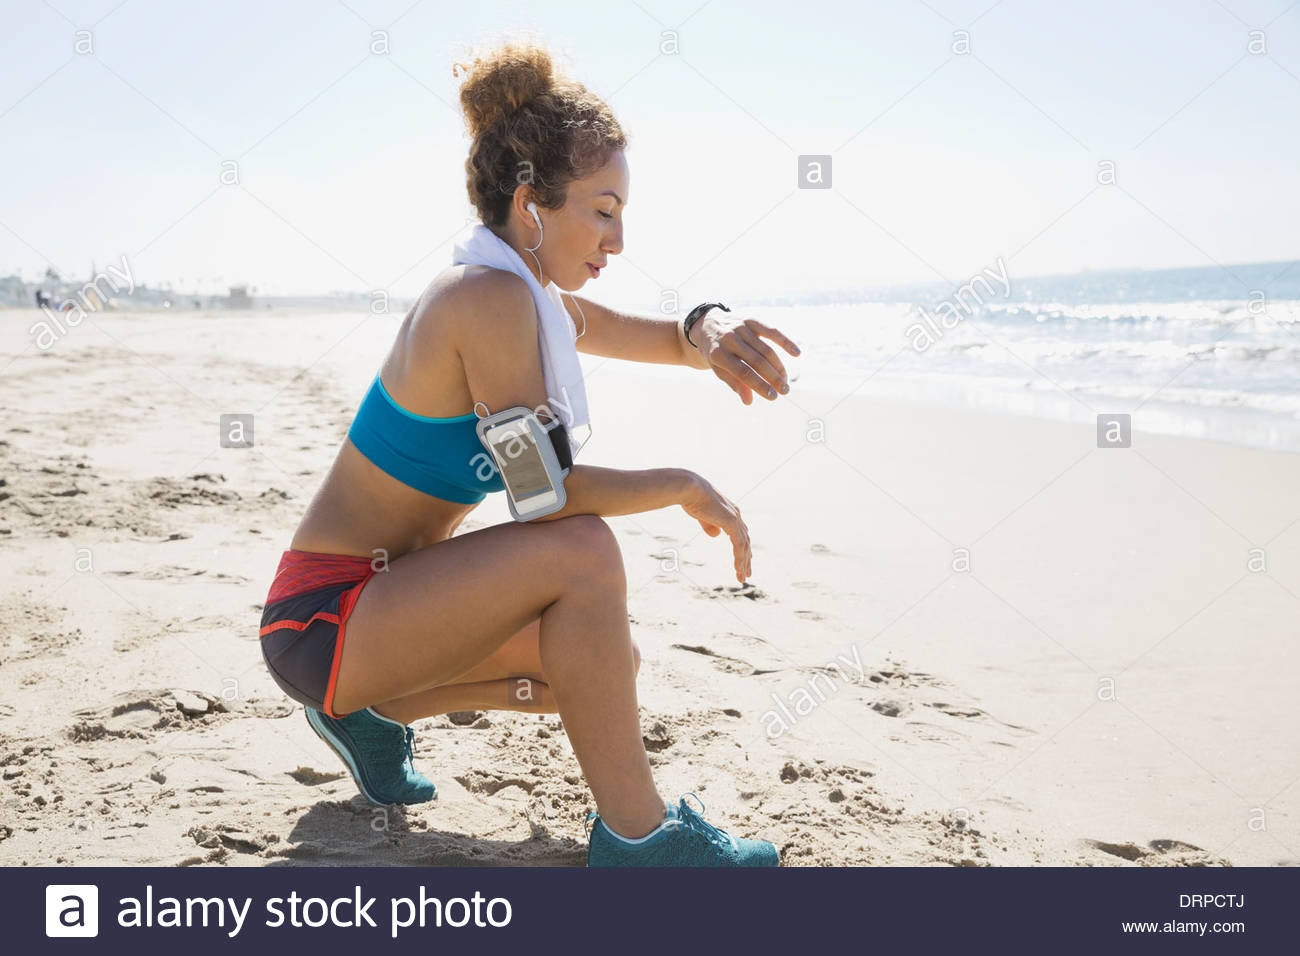 Active woman timing rest period with stopwatch - Stock Image